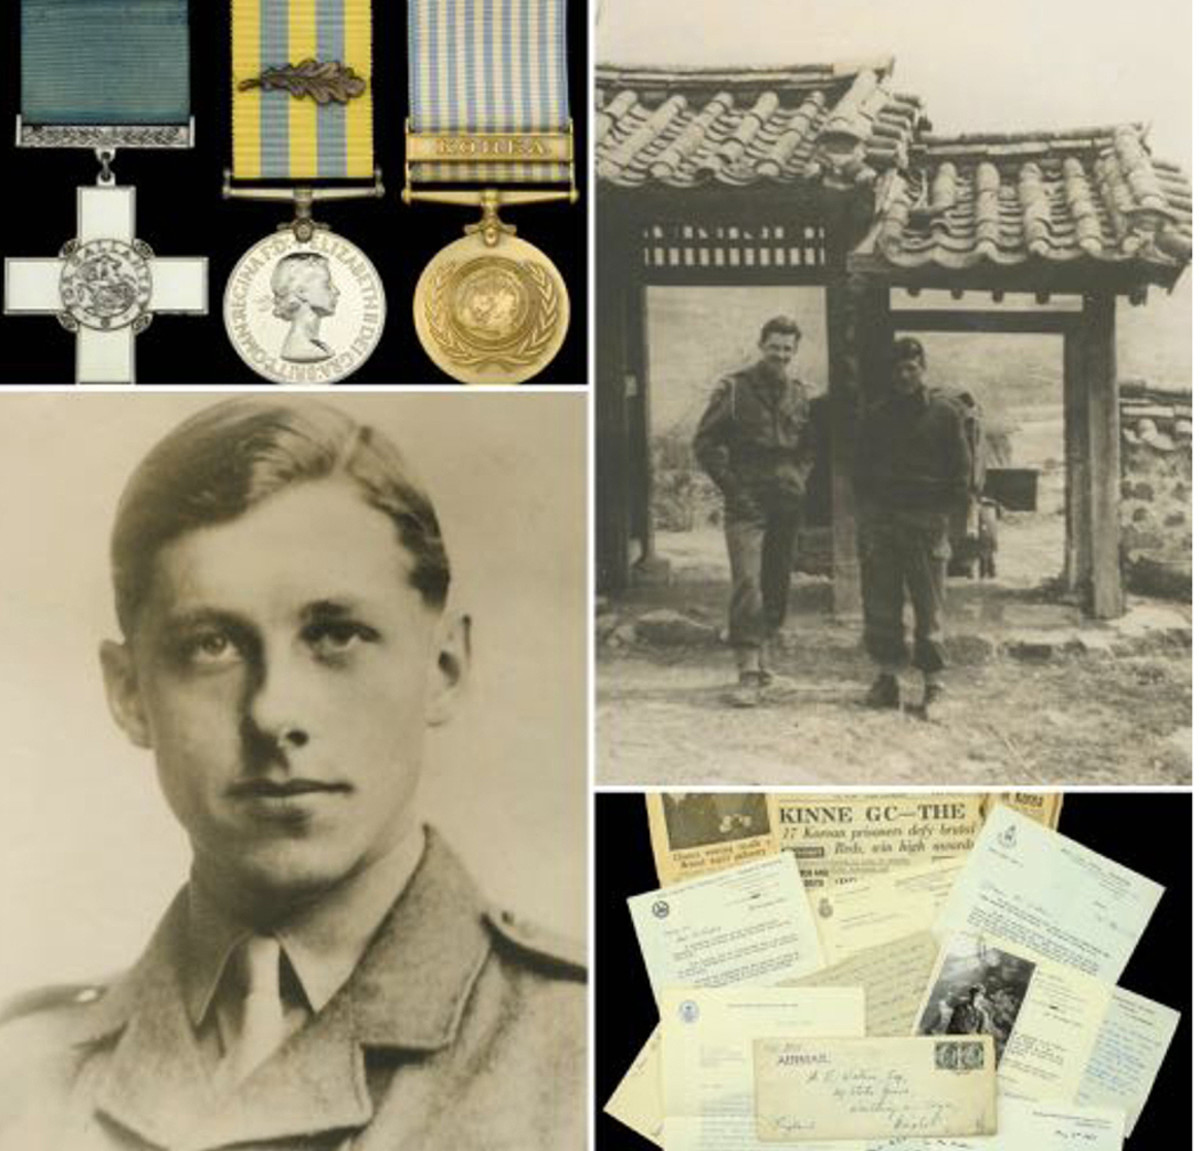 Terence Edward Waters and the George Cross that went for£280,000 at the Dix Noonan Webb Orders, Decorations, Medals and Militaria auction